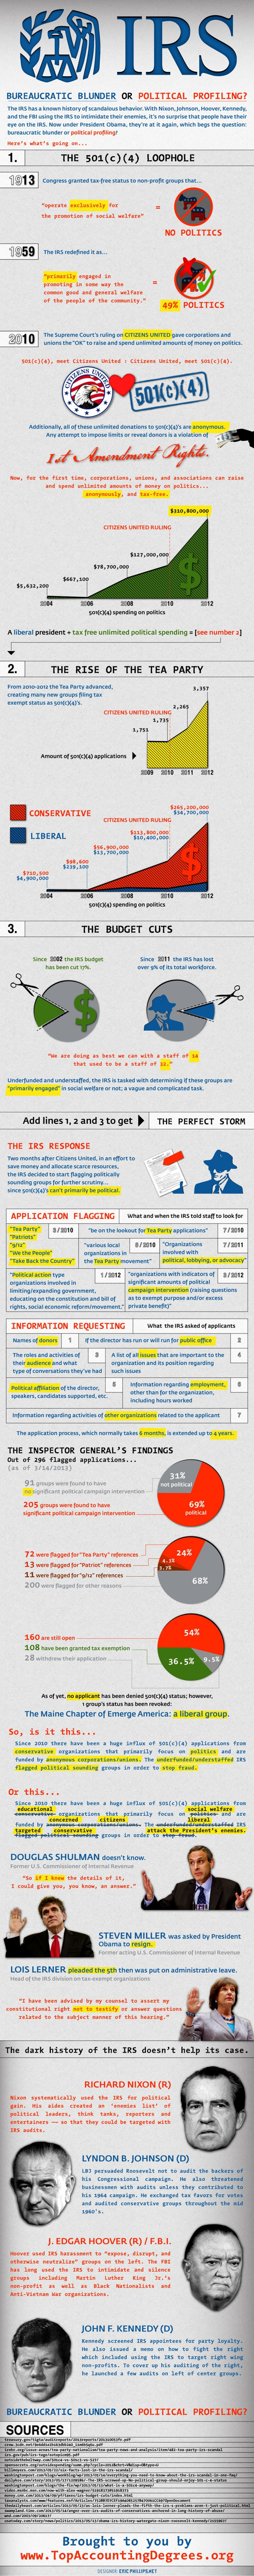 How the IRS abused the 501(c)(4) tax loophole Infographic